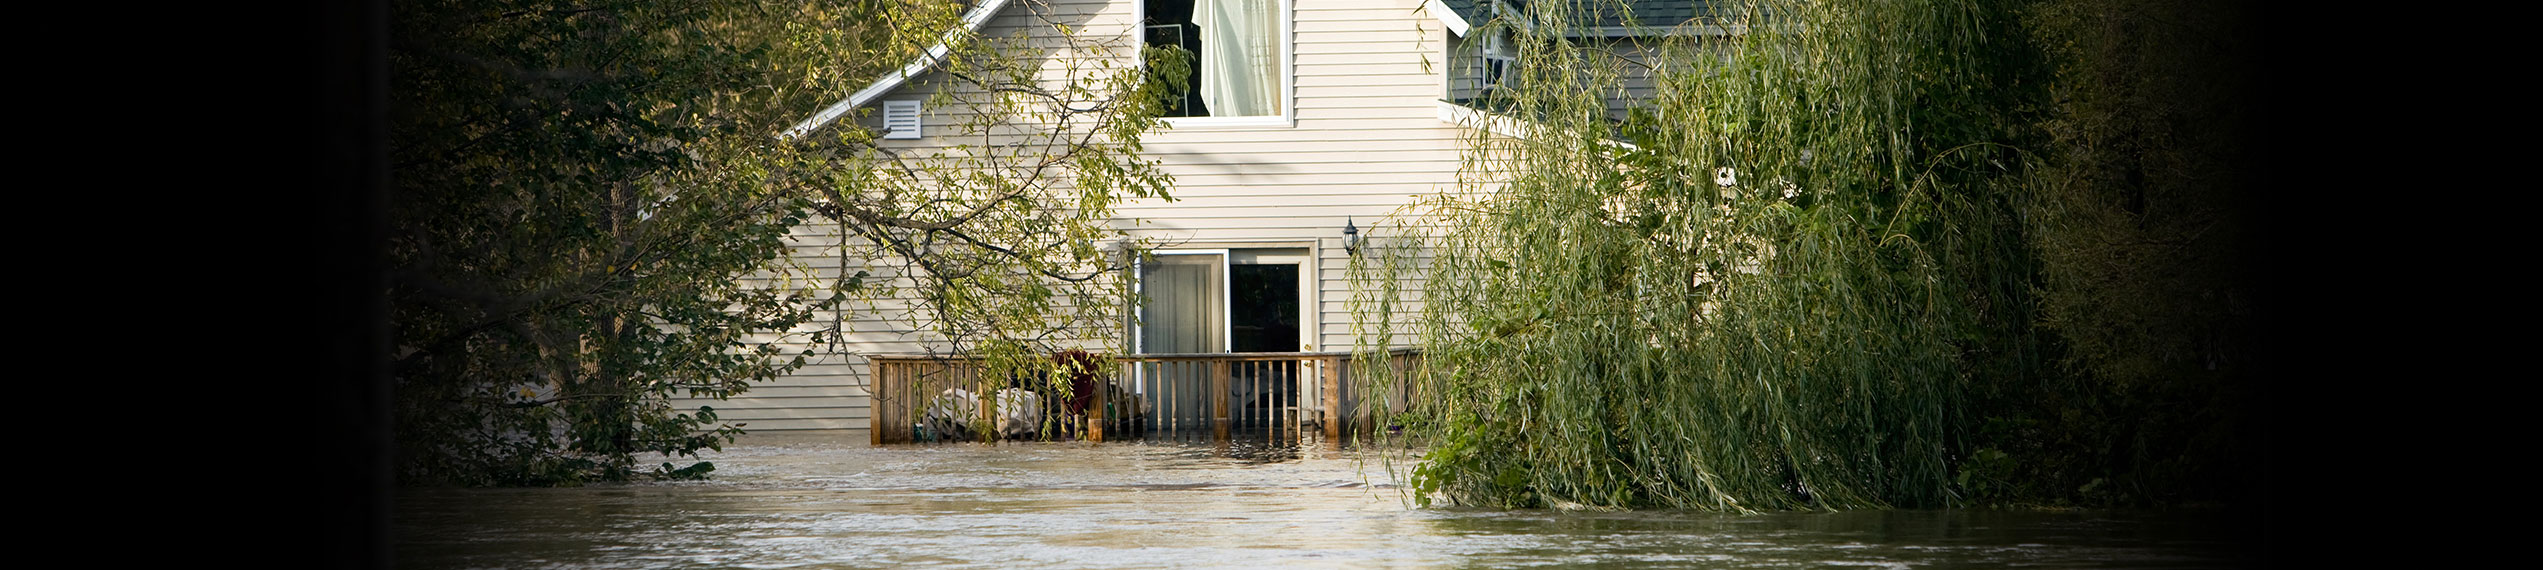 Water & Flood Damage Removal Services in Paul Davis Emergency Services of Williamsville, NY